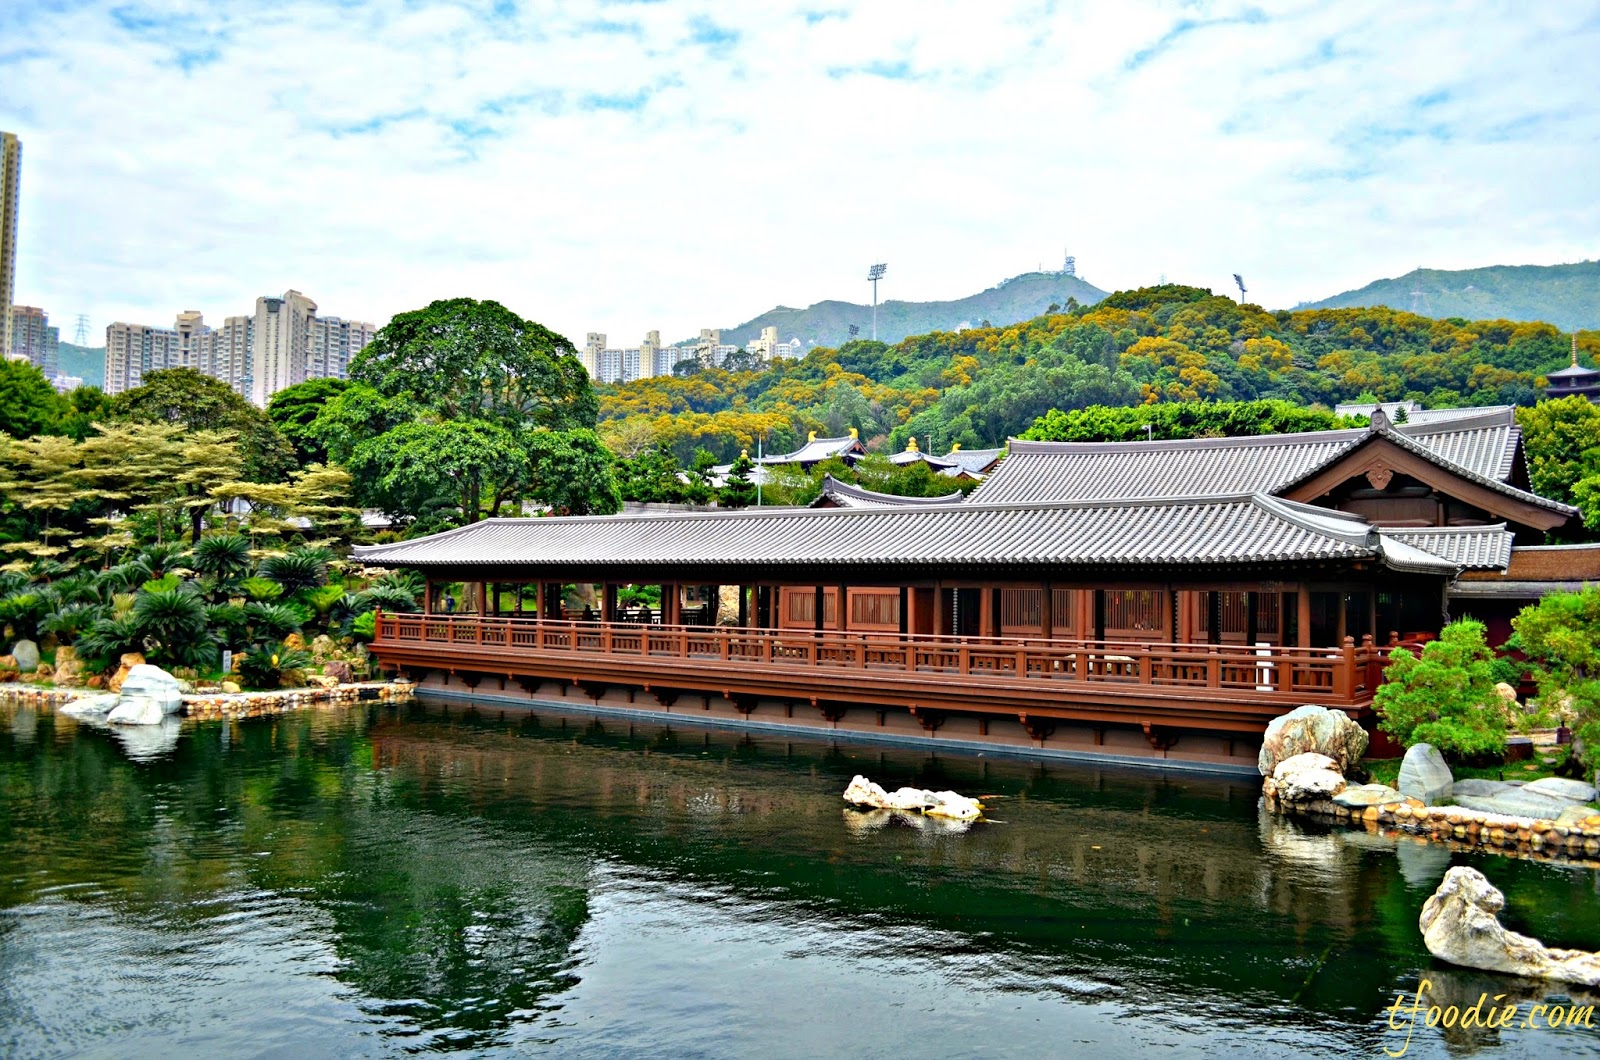 the gardens cover an area of 35000 square metres and although being built recently its architecture and landscaping give visitors a sense of serenity and - Nan Lian Garden